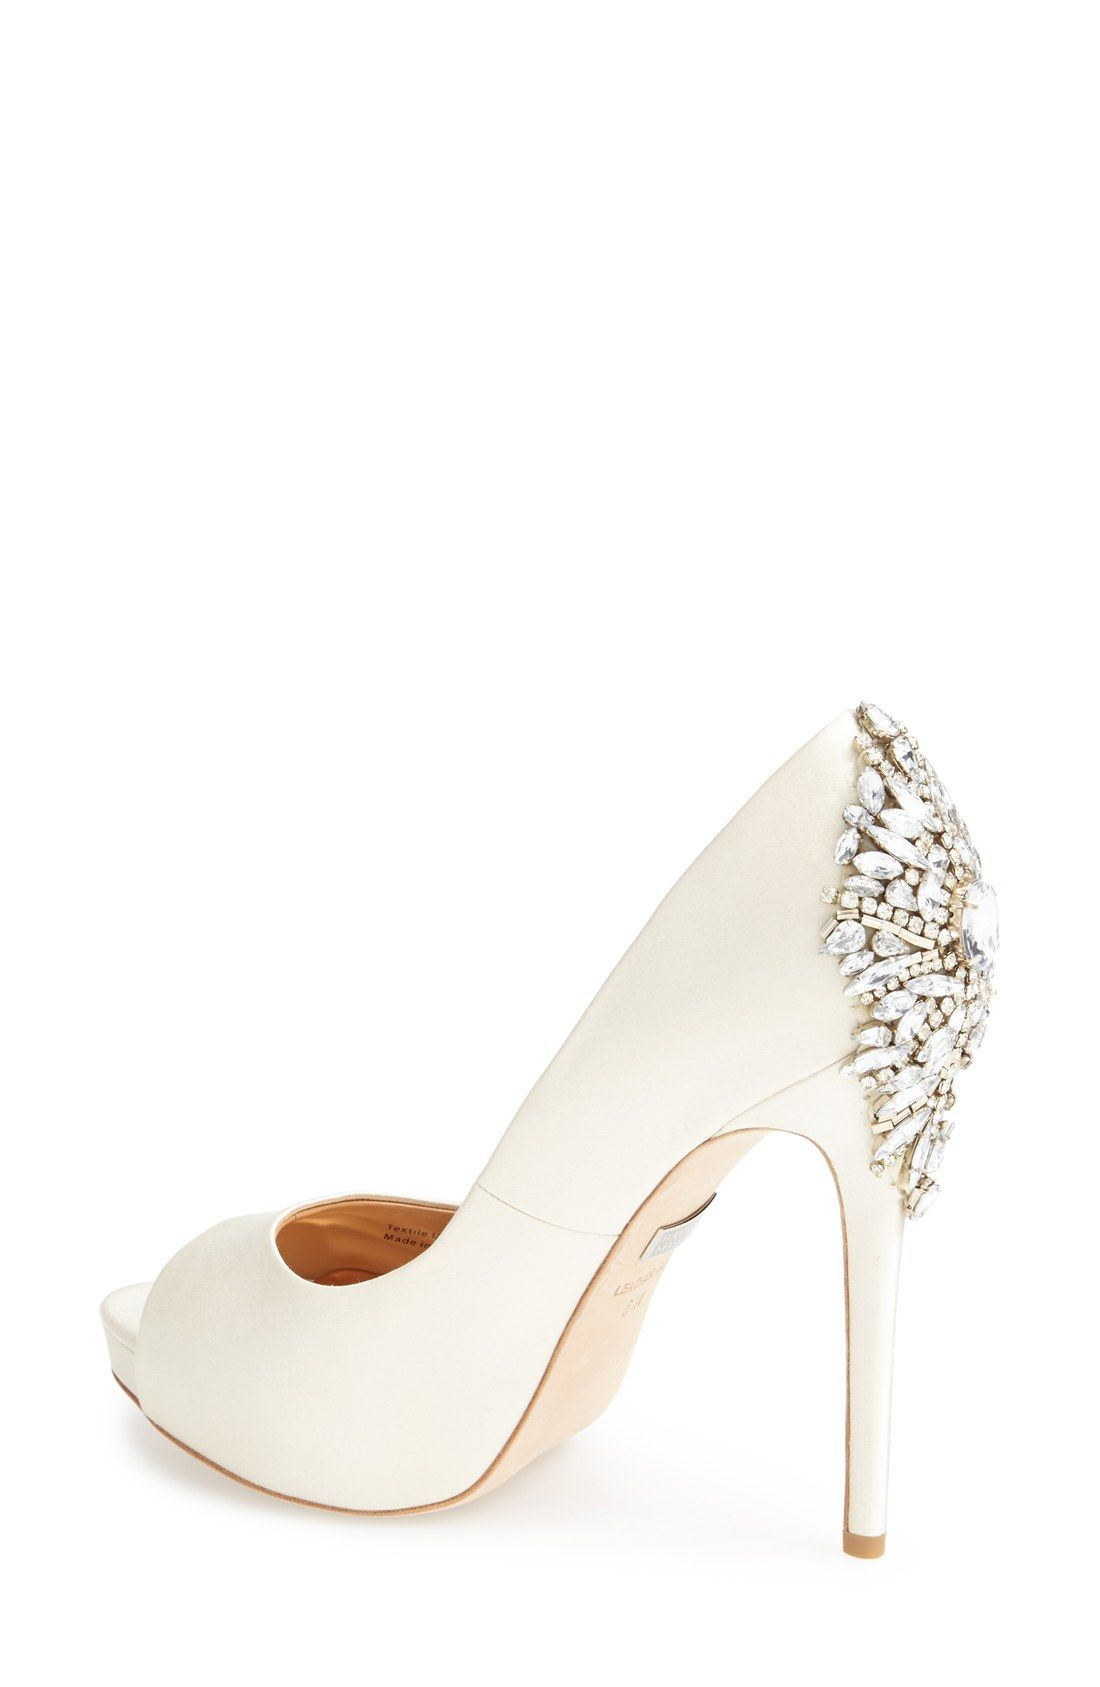 Left speechless by these jaw dropping heels The crystal detailing